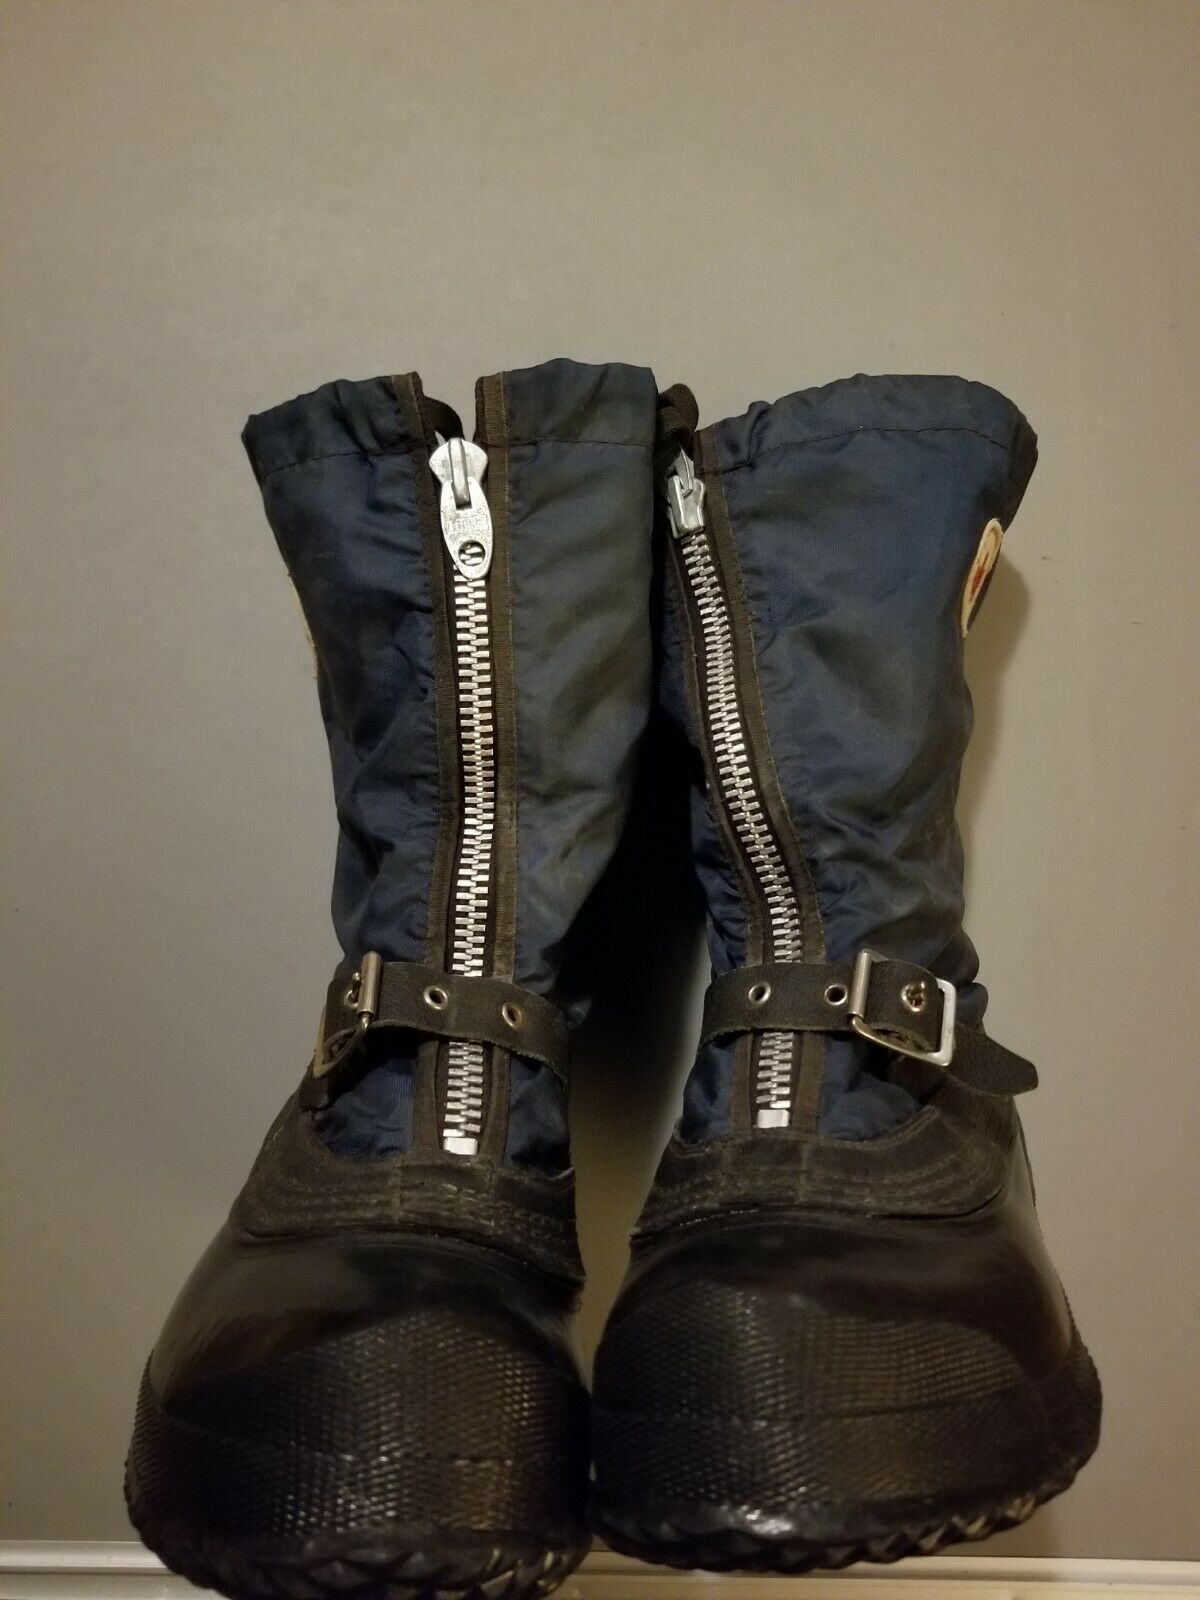 Women size 8 zip zip zip up Winter Snow boots with removable liner and strap buckle bluee 5030d0